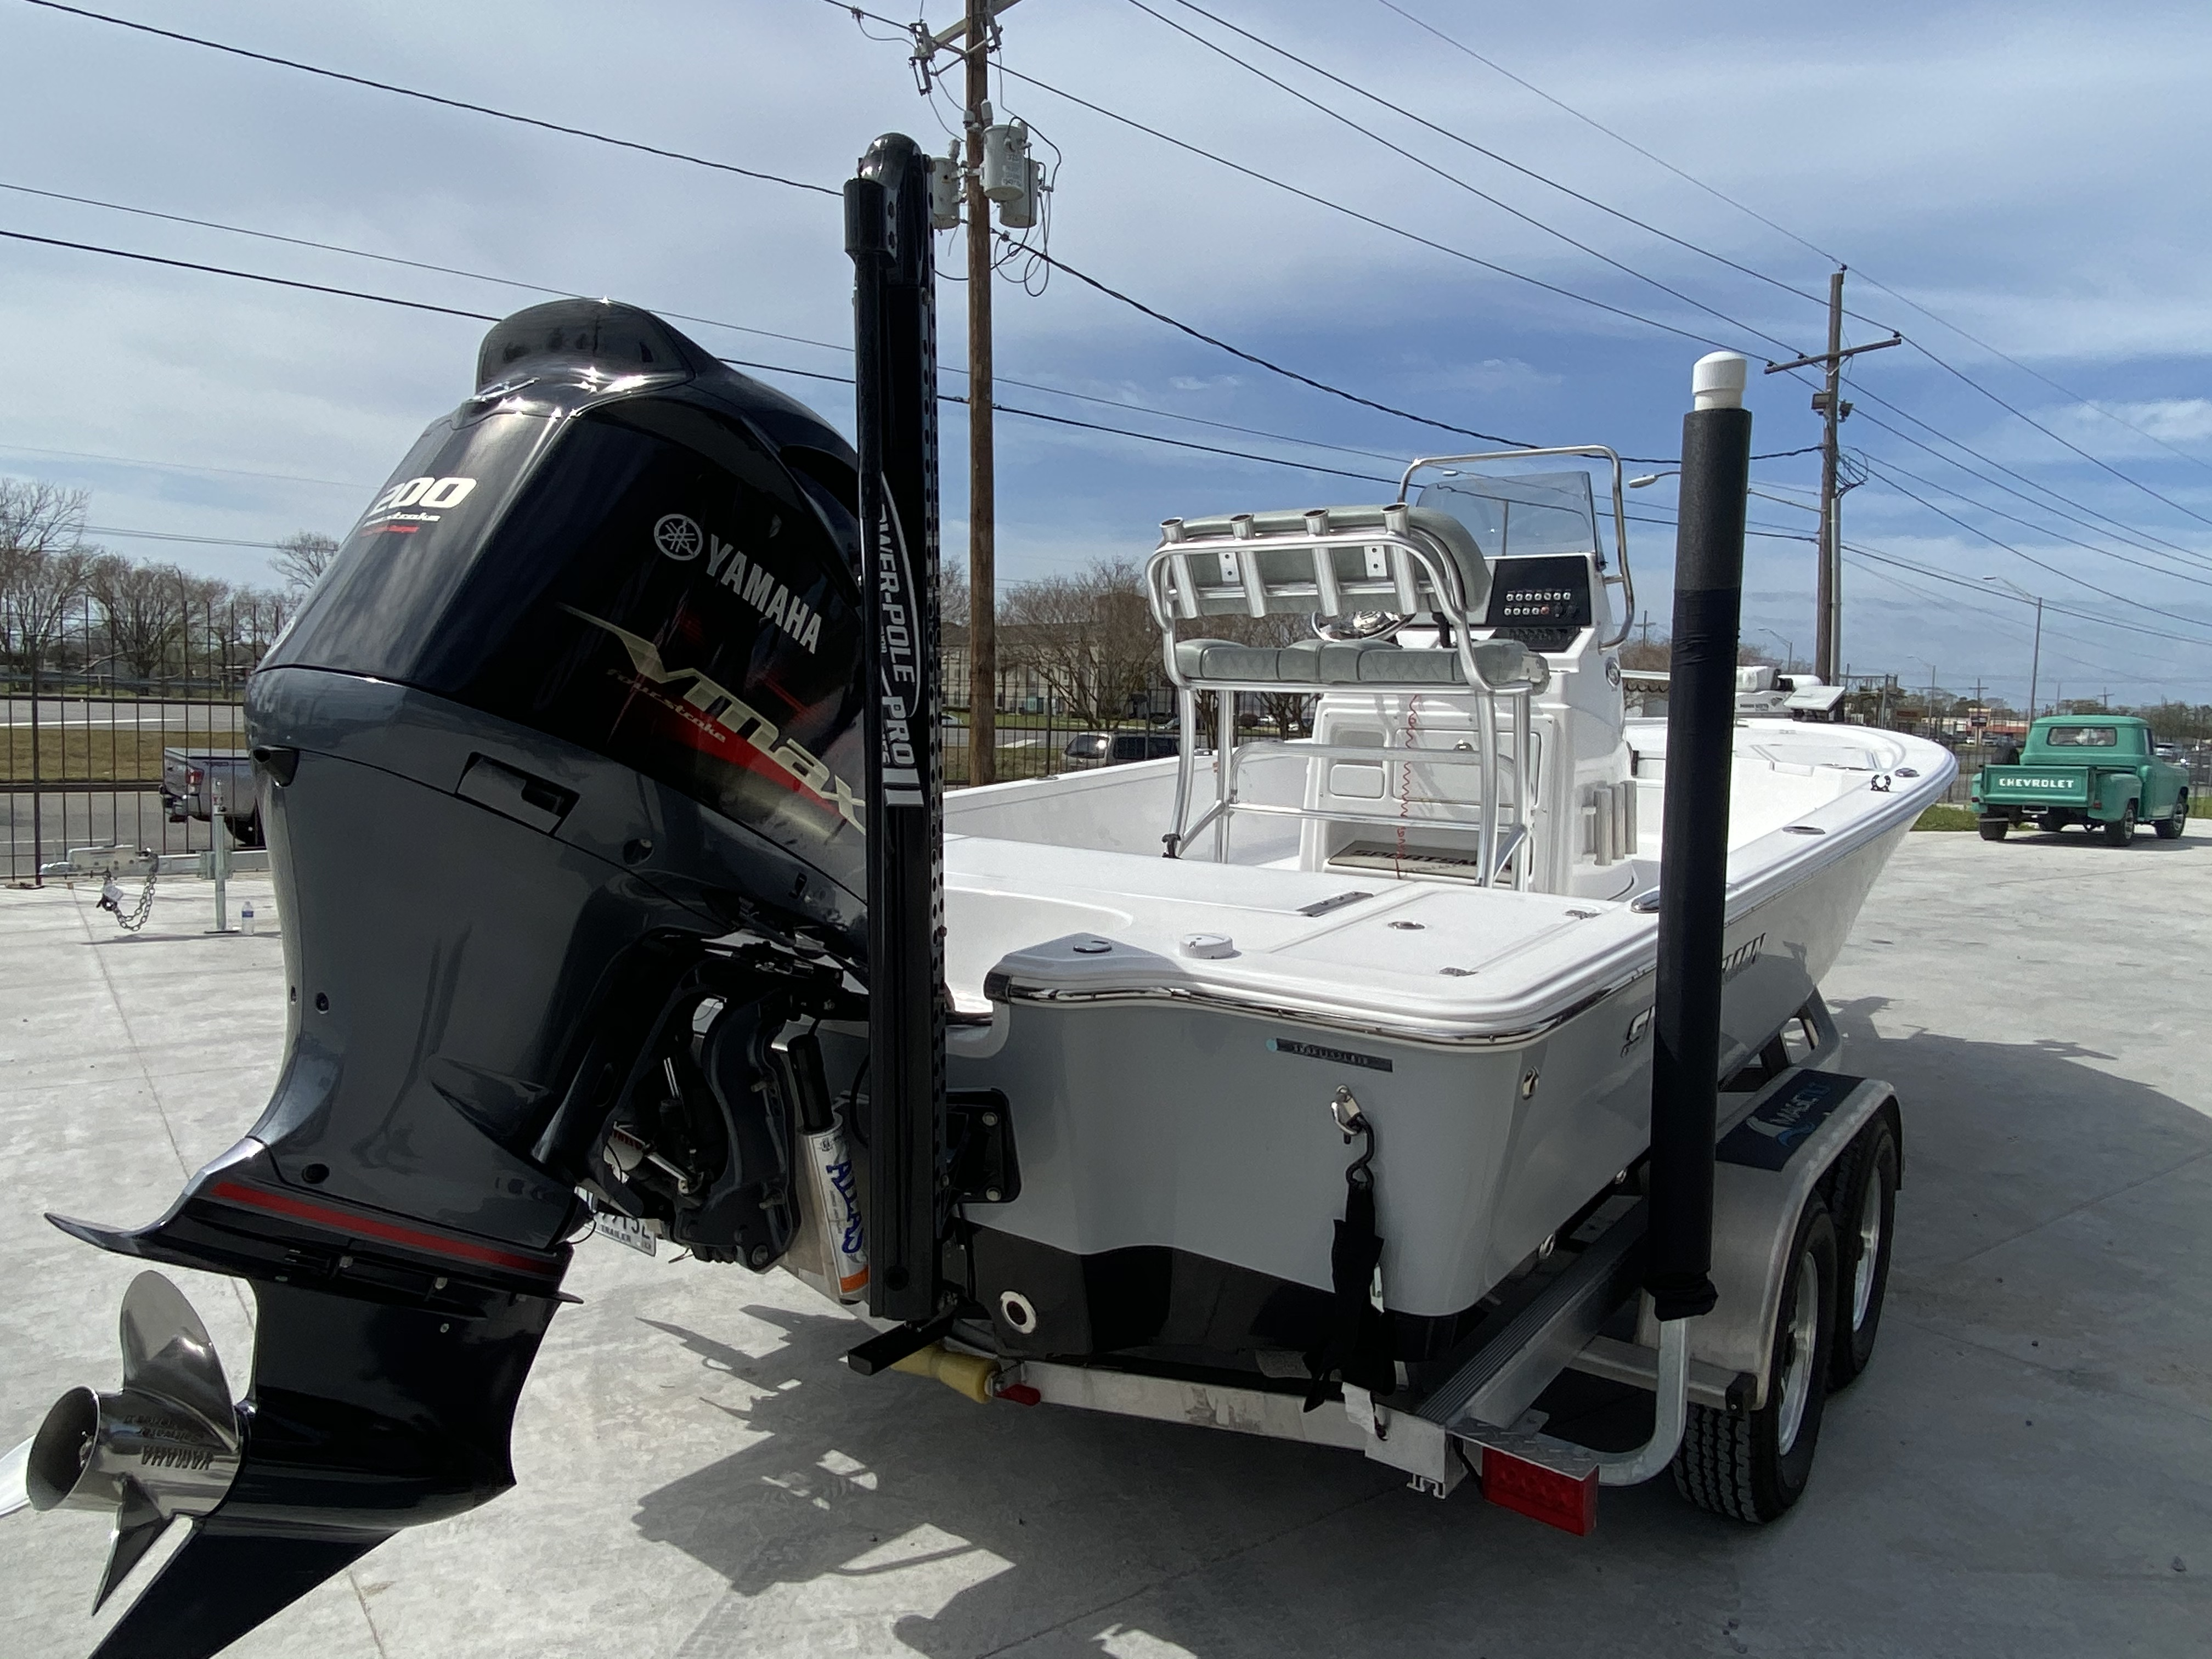 2019 Sportsman Boats boat for sale, model of the boat is 214 Tournament & Image # 21 of 26